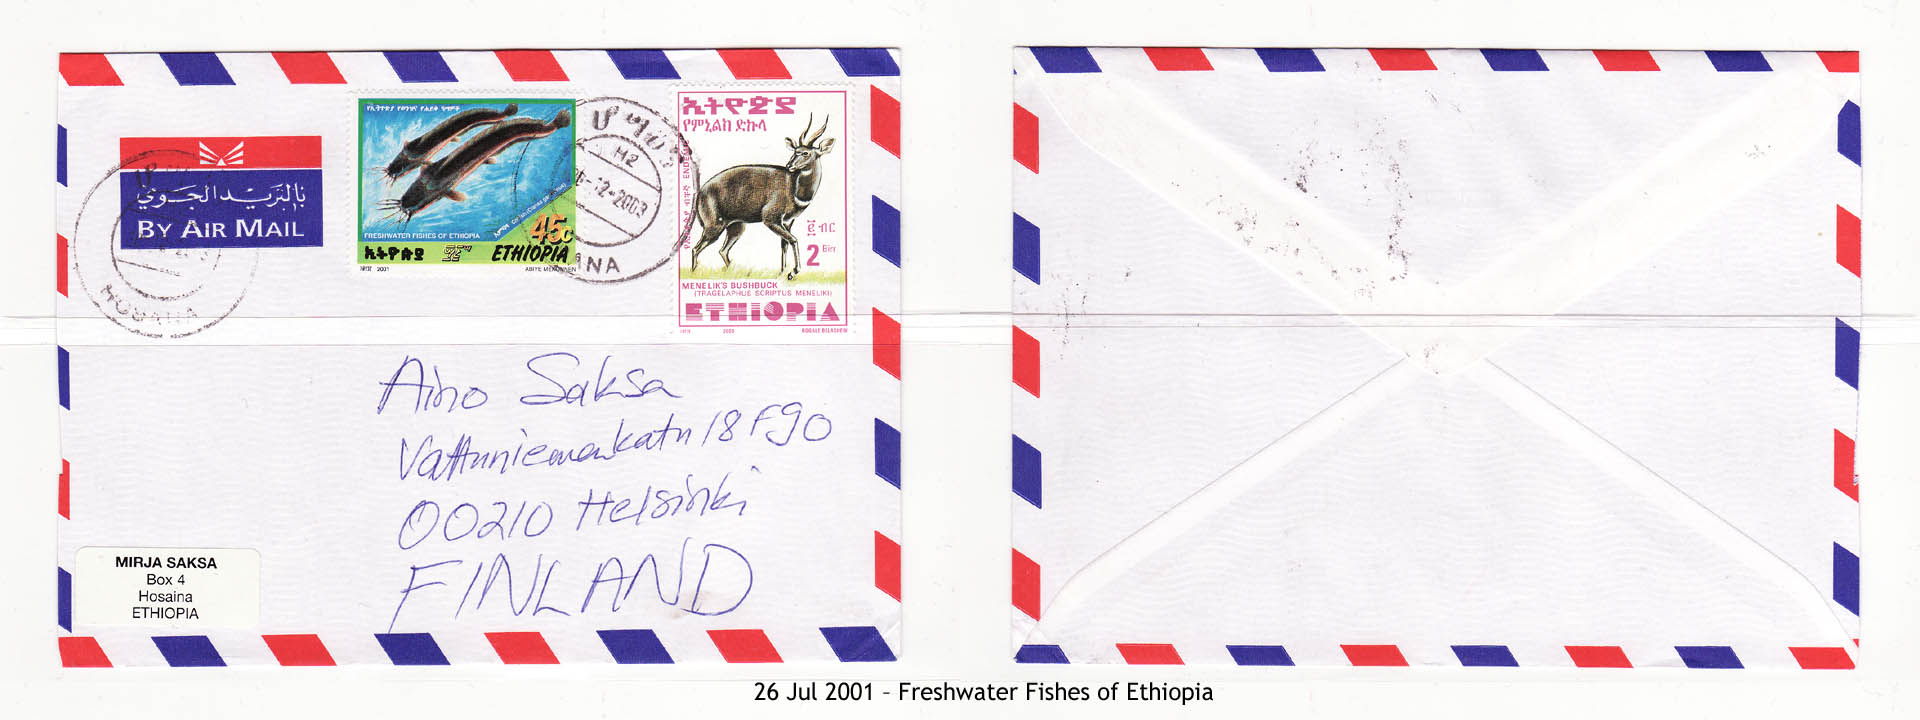 20010726 – Freshwater Fishes of Ethiopia